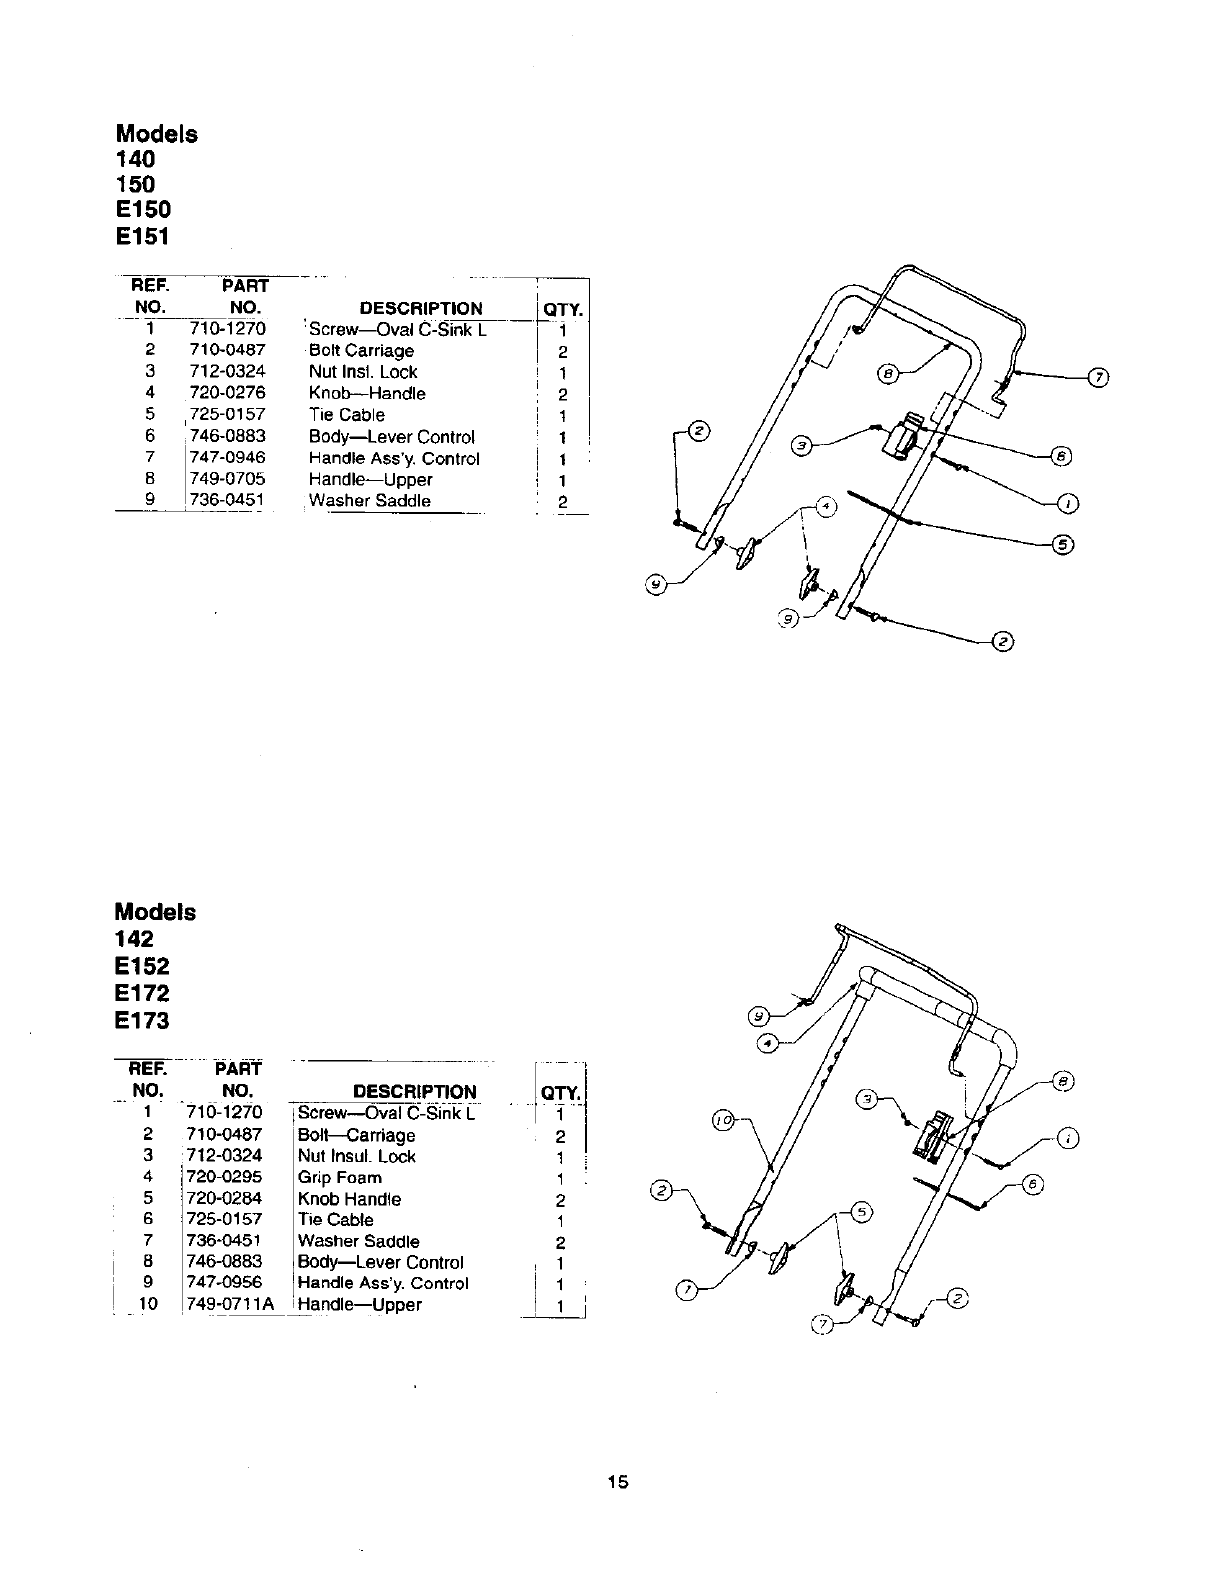 MTD 31A 150 000 User Manual SINGLE STAGE SNOW THROWER